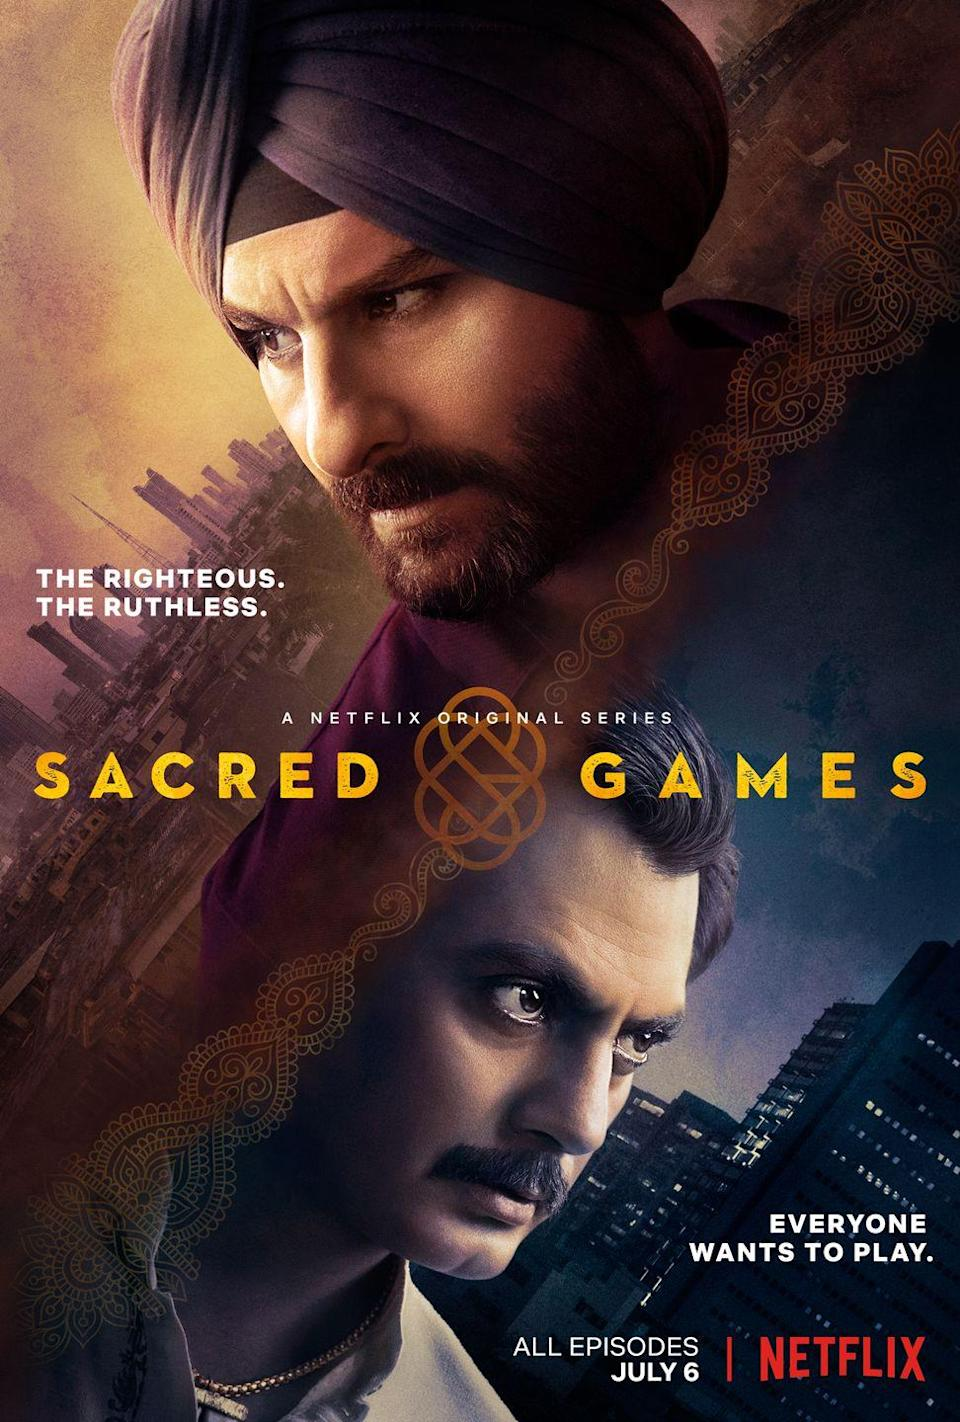 """<p><a href=""""https://www.nytimes.com/2019/12/20/arts/television/best-international-tv-shows.html"""" rel=""""nofollow noopener"""" target=""""_blank"""" data-ylk=""""slk:The New York Times named Sacred Games"""" class=""""link rapid-noclick-resp""""><em>The New York Times</em> named <em>Sacred Games</em></a> one of the best international TV shows of the 2010s for a good reason. Inspired by a <a href=""""https://www.amazon.com/Sacred-Games-Novel-Vikram-Chandra/dp/0061130362?tag=syn-yahoo-20&ascsubtag=%5Bartid%7C10055.g.35995430%5Bsrc%7Cyahoo-us"""" rel=""""nofollow noopener"""" target=""""_blank"""" data-ylk=""""slk:thriller novel by author Vikram Chandra"""" class=""""link rapid-noclick-resp"""">thriller novel by author <strong>Vikram Chandra</strong></a>, the show follows police officer Sartaj Singh (<strong>Saif Ali Khan</strong>) as he tries to stop a terrorist attack in Mumbai orchestrated by Ganesh Gaitonde (<strong>Nawazuddin Siddiqui</strong>). The only problem is, he doesn't know where to start and he only has 25 days. </p><p><a class=""""link rapid-noclick-resp"""" href=""""https://www.netflix.com/title/80115328"""" rel=""""nofollow noopener"""" target=""""_blank"""" data-ylk=""""slk:STREAM NOW"""">STREAM NOW</a></p>"""